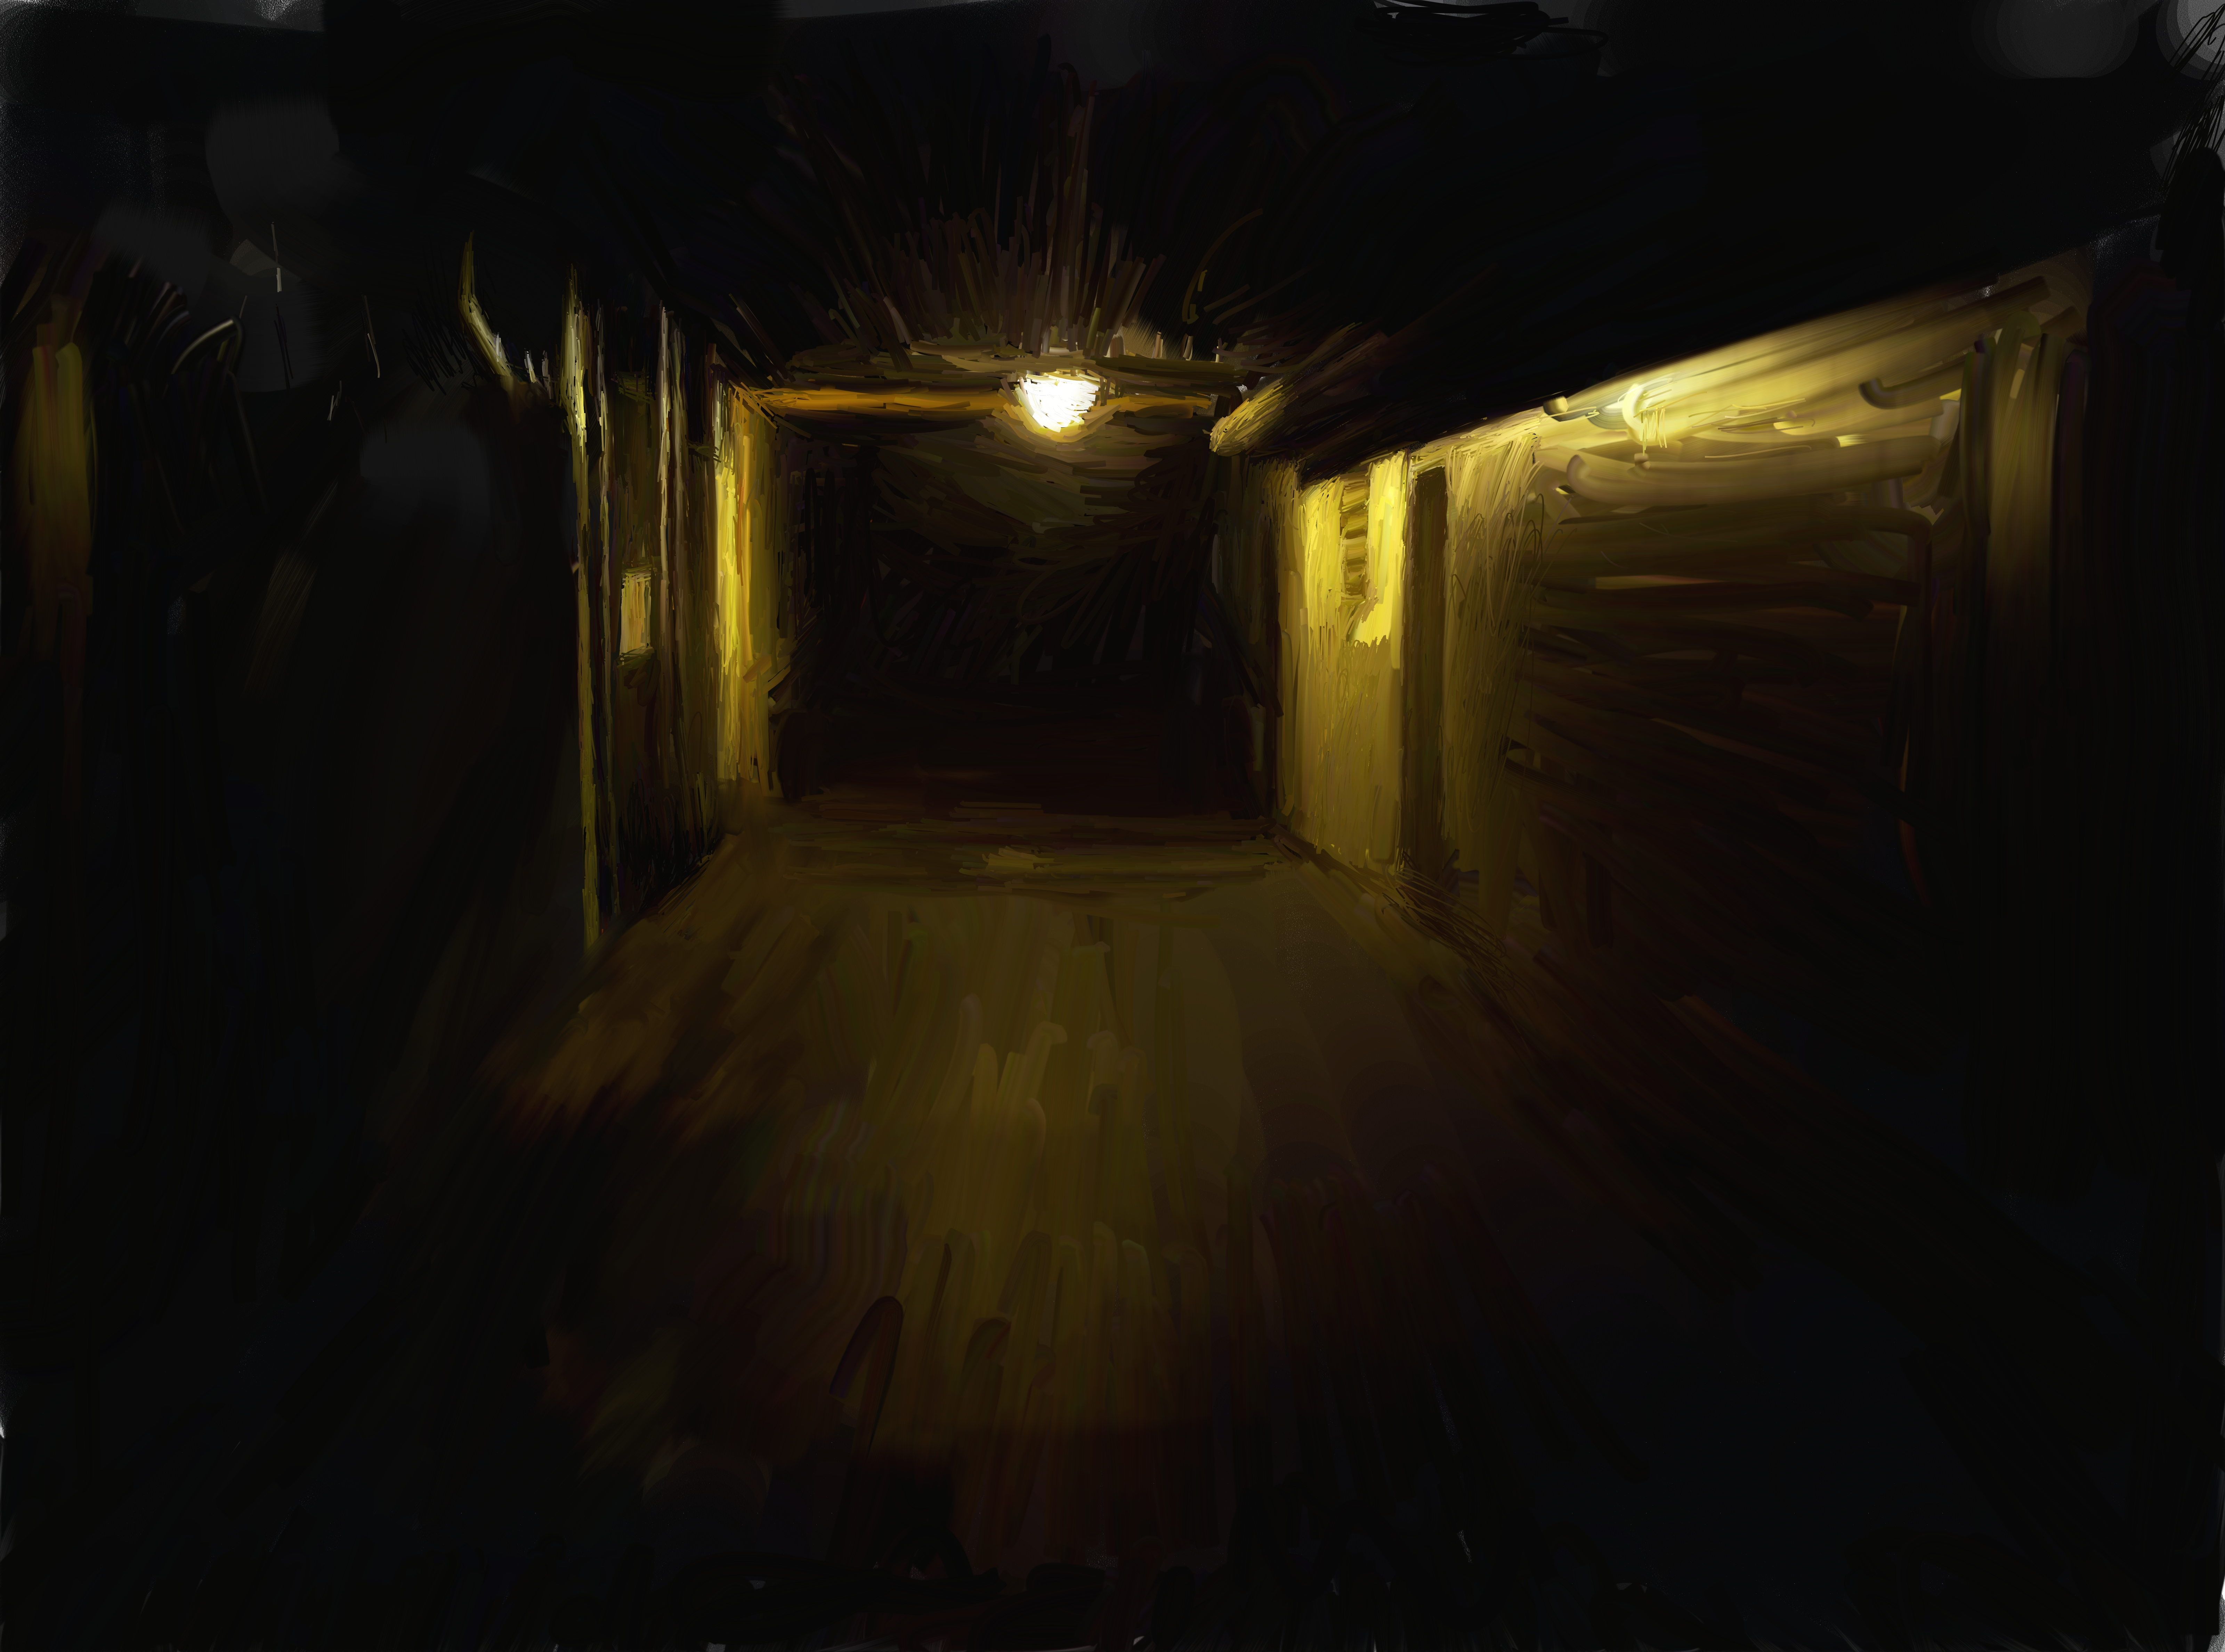 Dark Hallway By Darkwolf33333 On DeviantArt